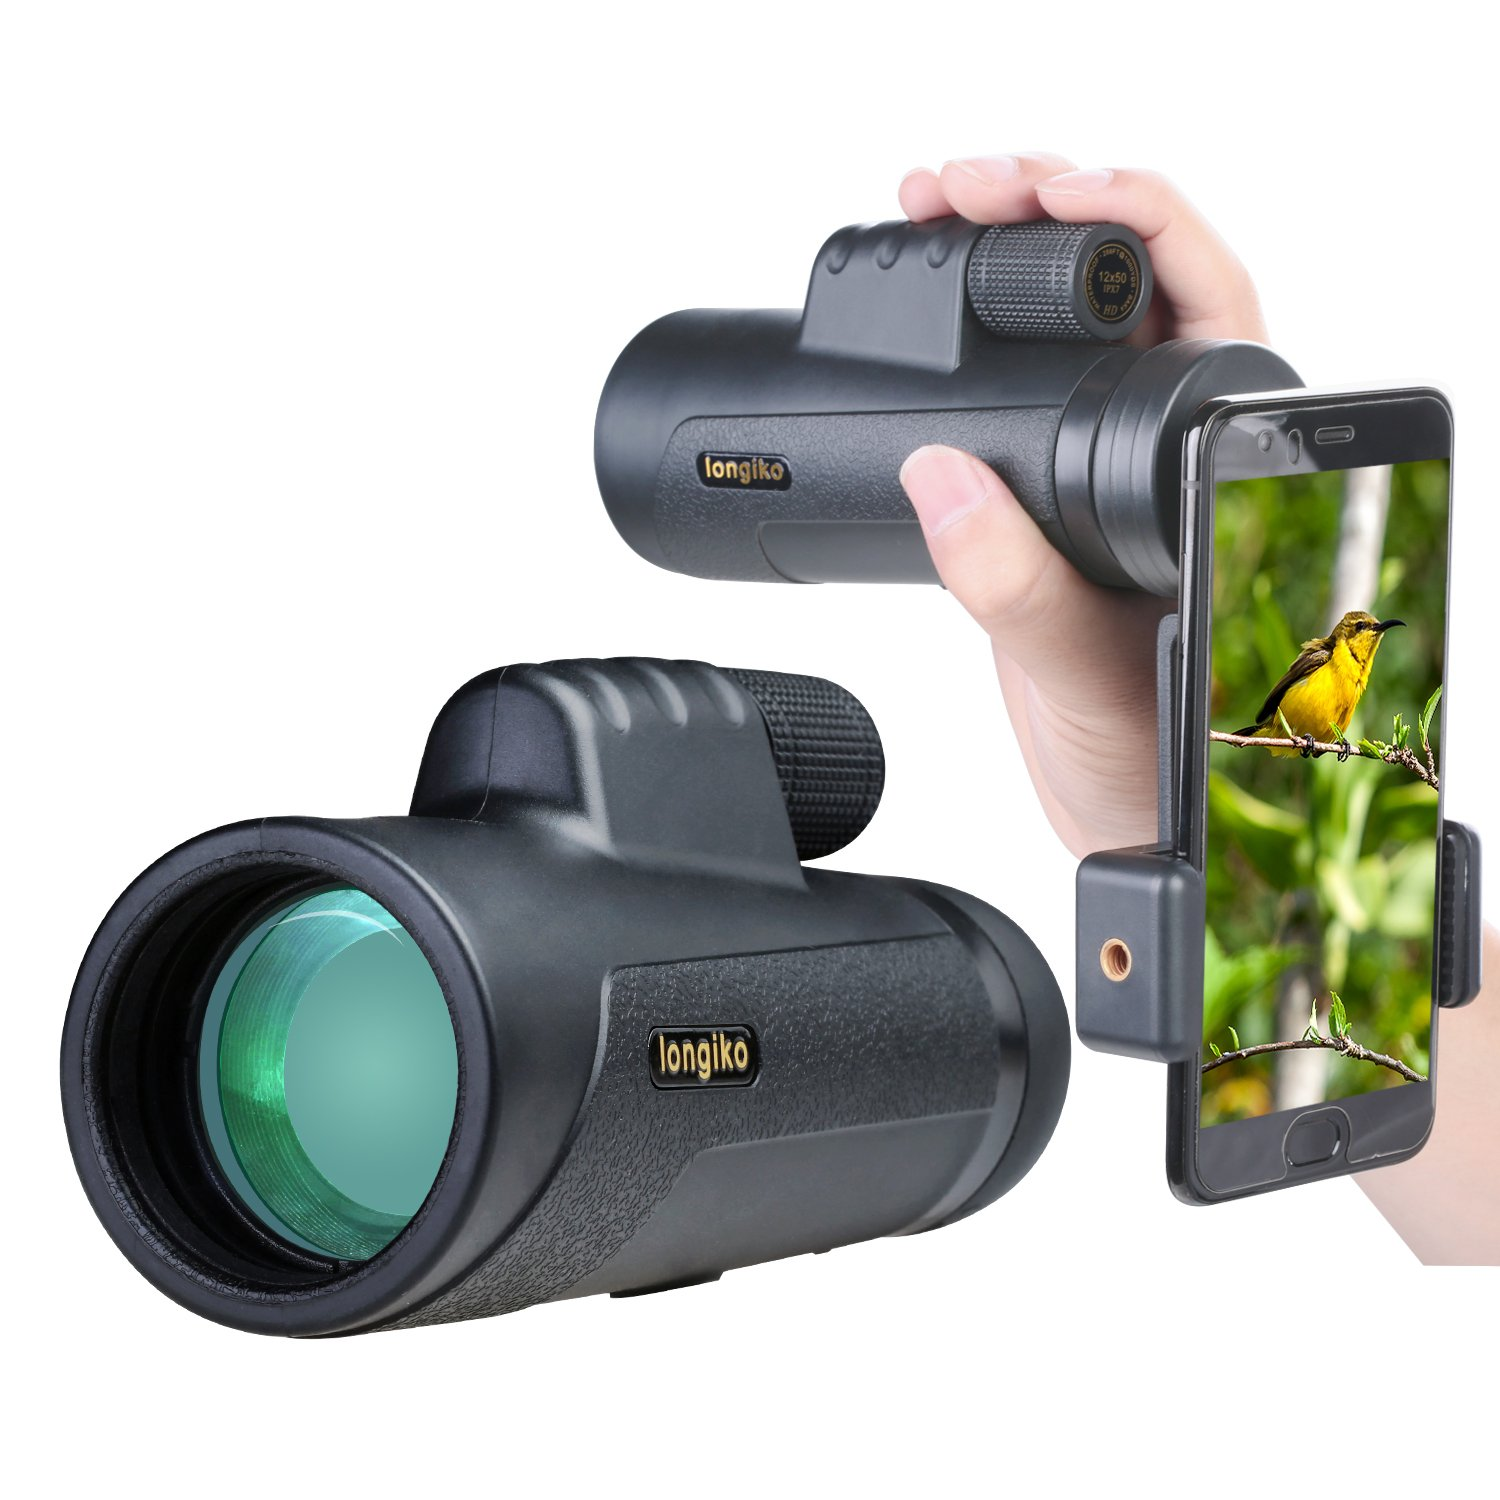 12X50 Monocular Scope, High Power Prism Monocular,Nitrogen Filled Waterproof Fog-proof IP7X Shockproof BAK4 Prism FMC Quick Smartphone Holder for Bird Watching Hunting Camping Travelling Wildlife Sece by longiko